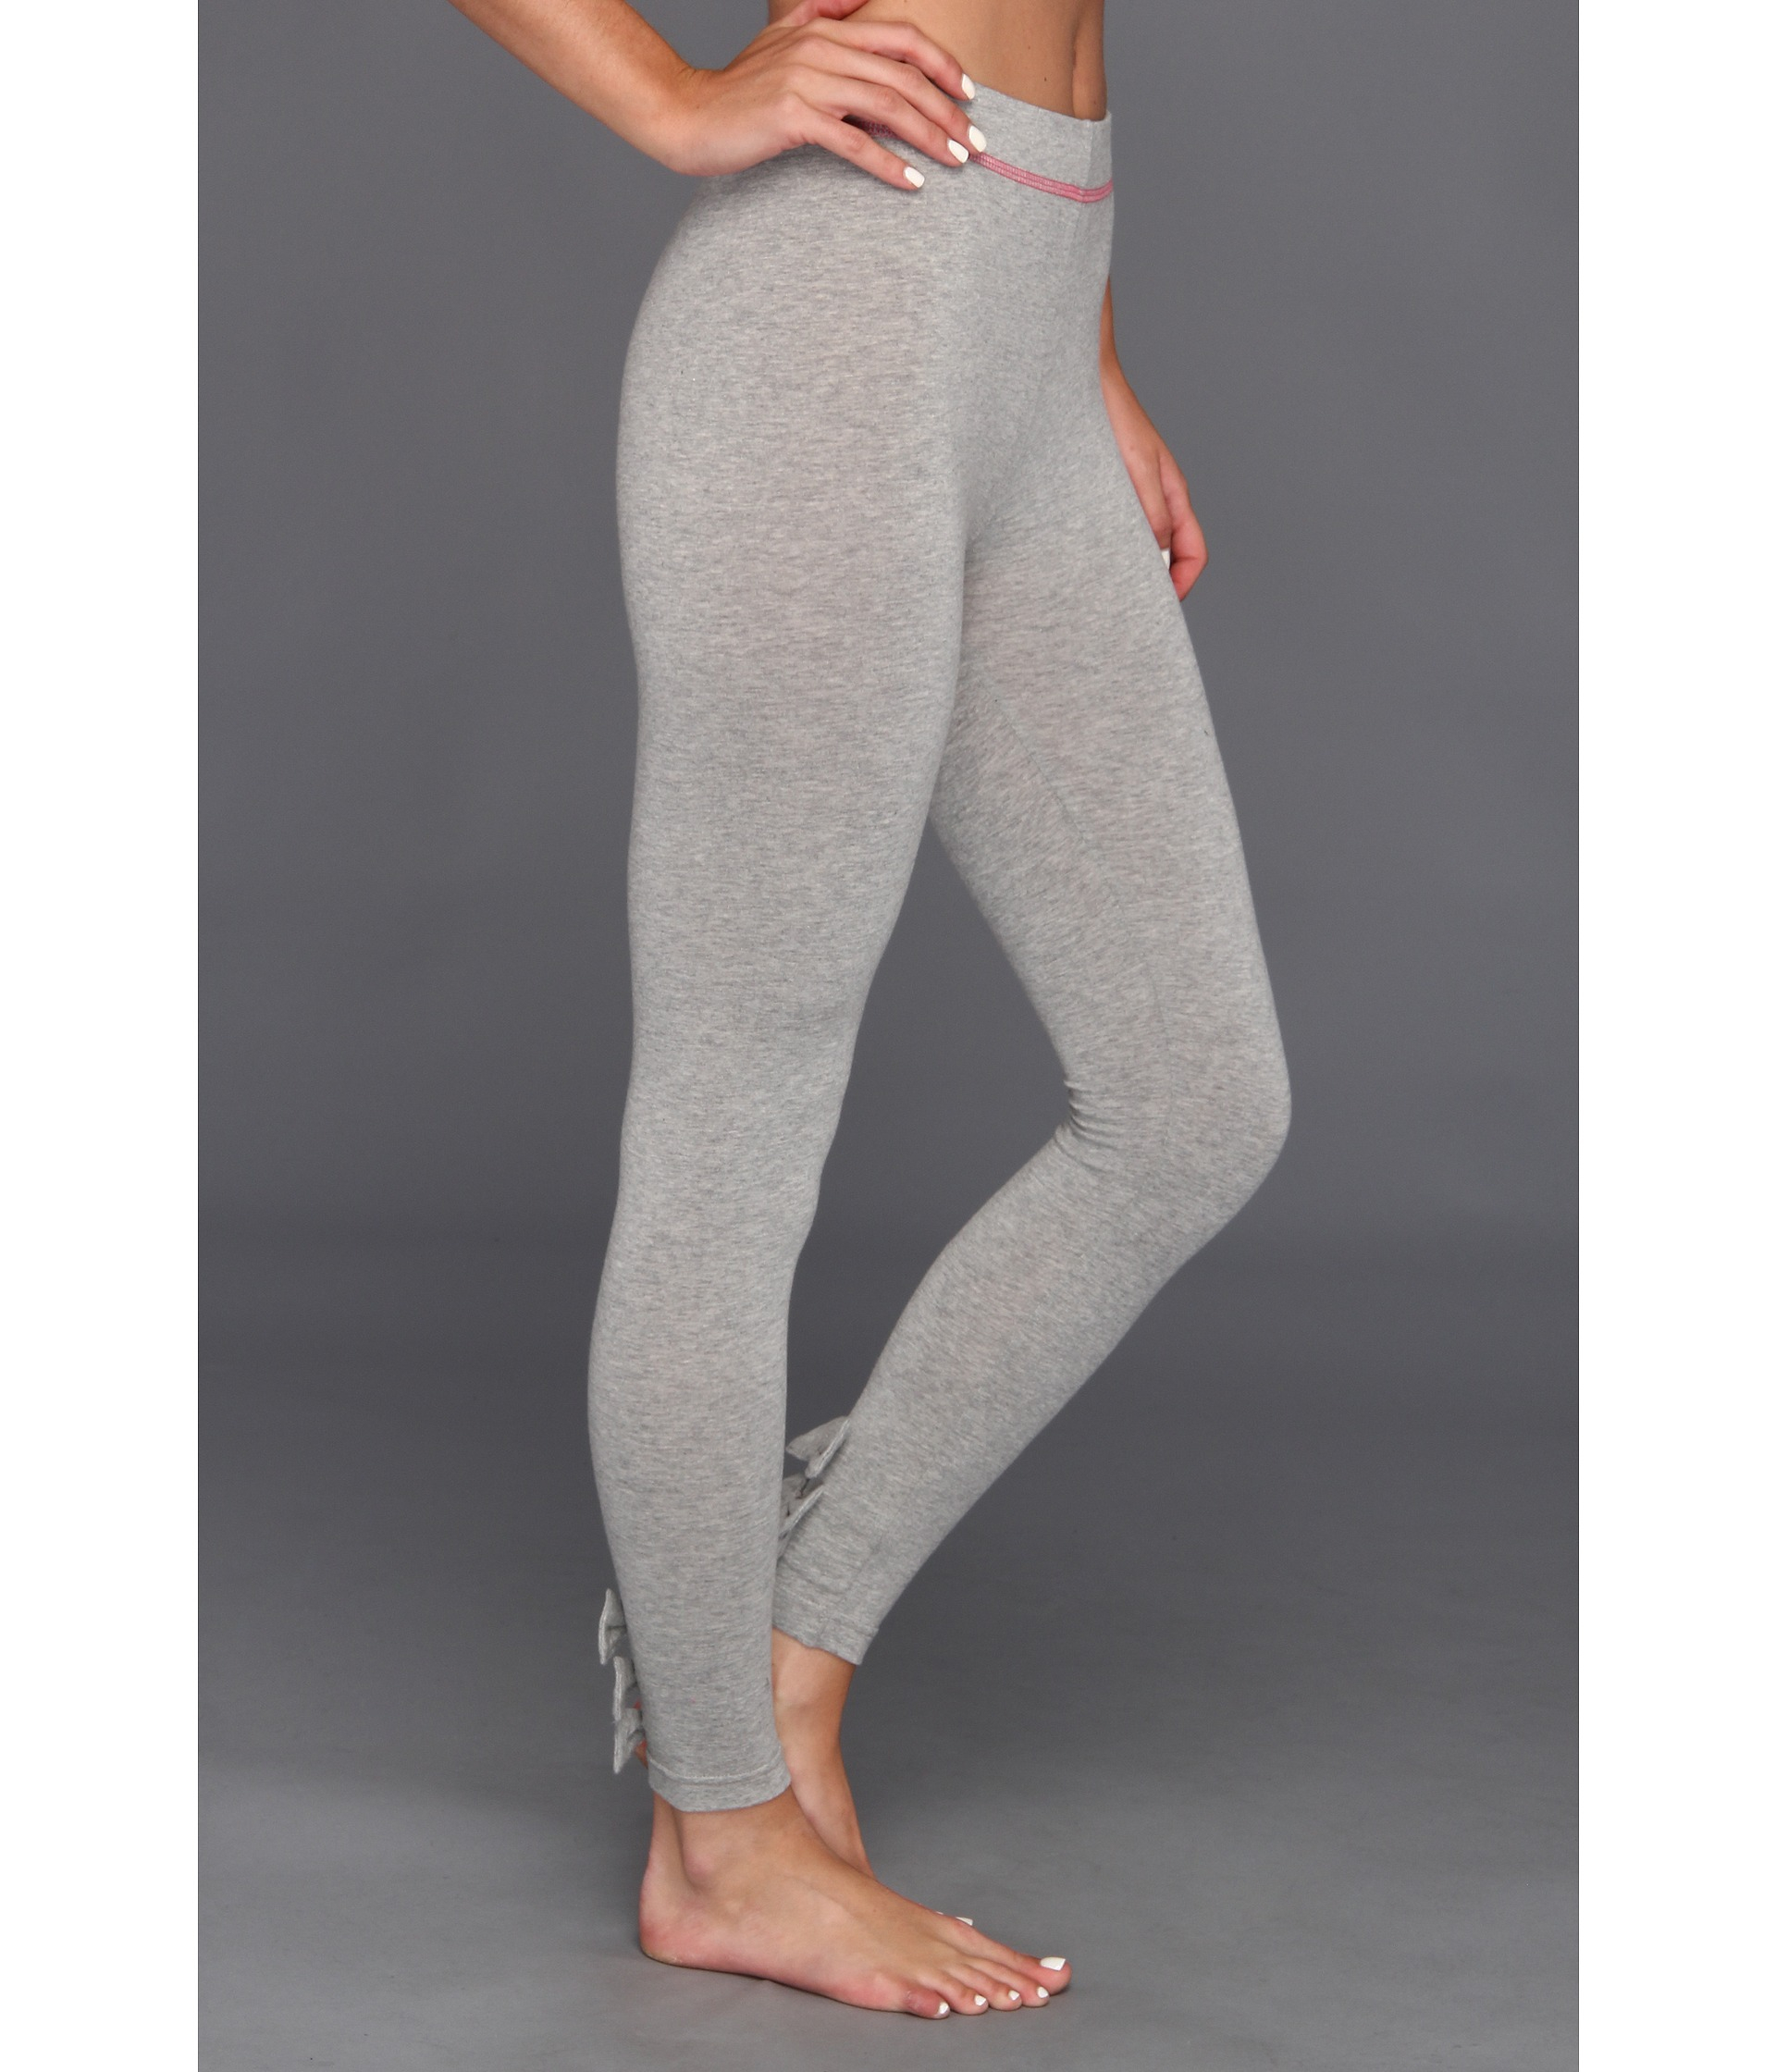 Betsey Johnson Baby Bows Cut Sew Legging in Gray Heather